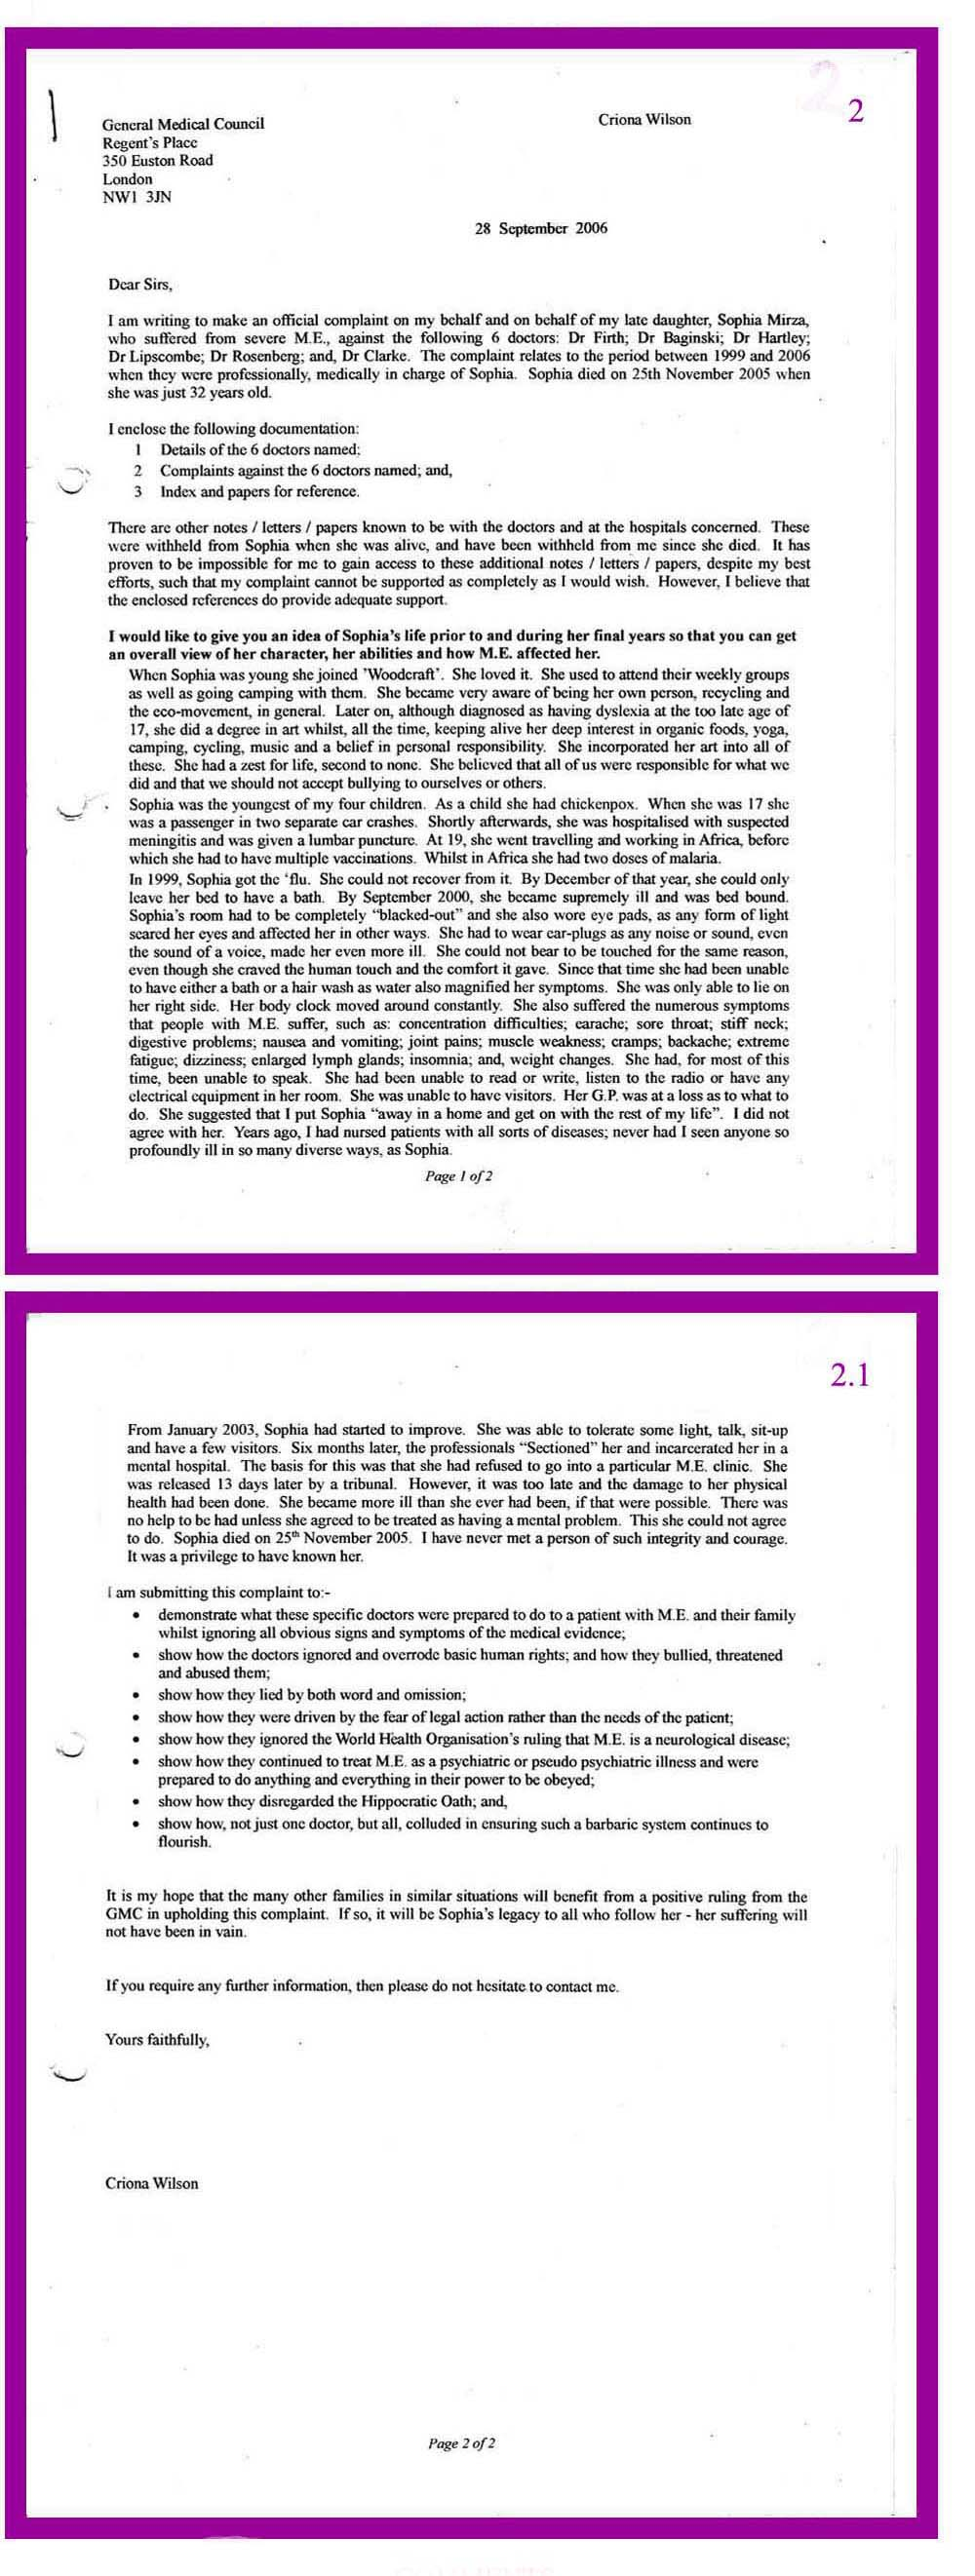 How to write a letter of complaint to a hospital choice image legal 2 28 09 2006 covering letter to gmc re complaint overview expocarfo choice image thecheapjerseys Gallery